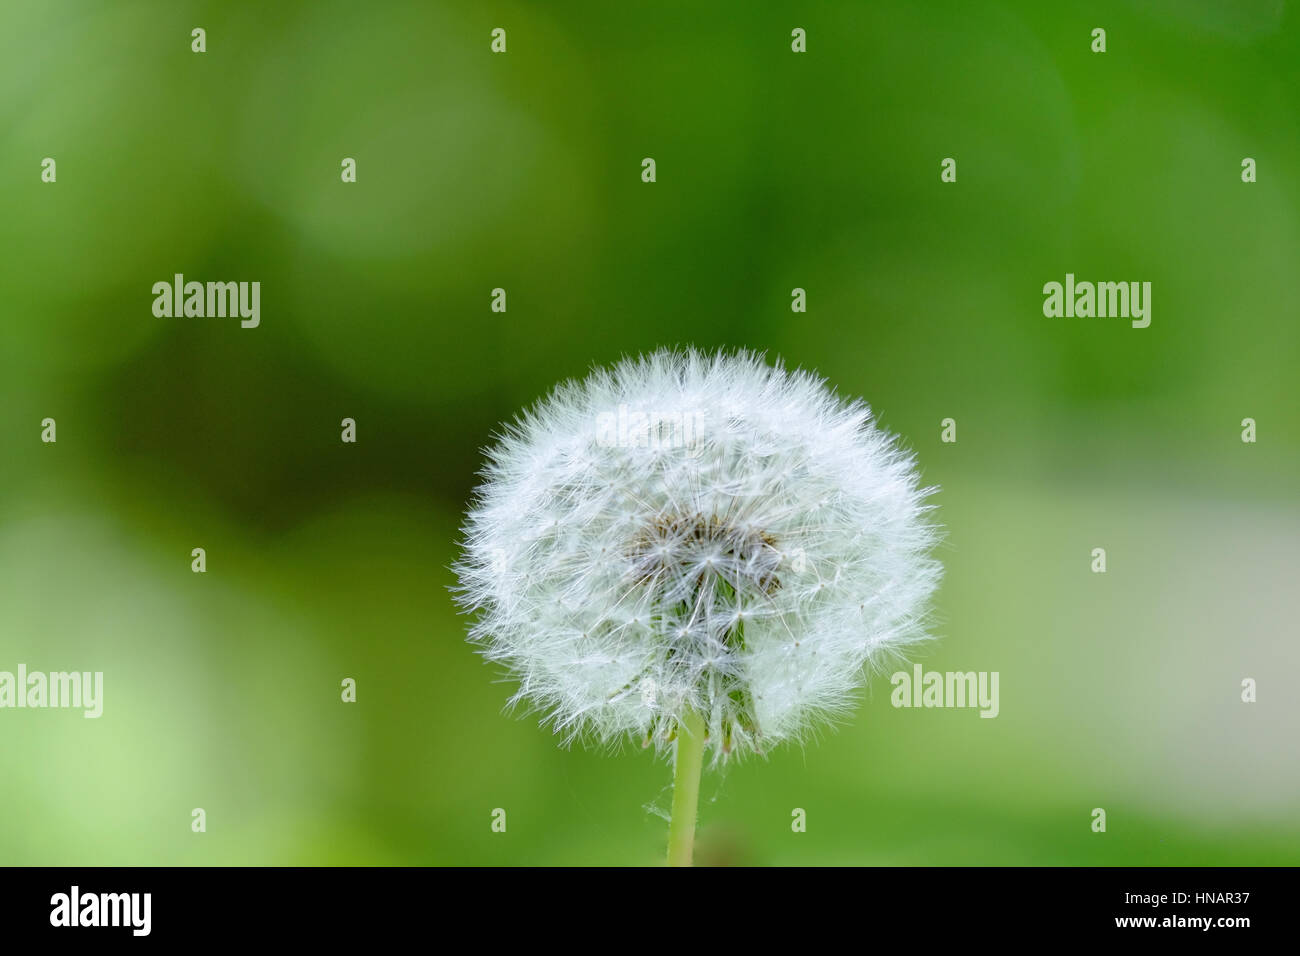 A beautiful dandelion fluff in a green background - Stock Image